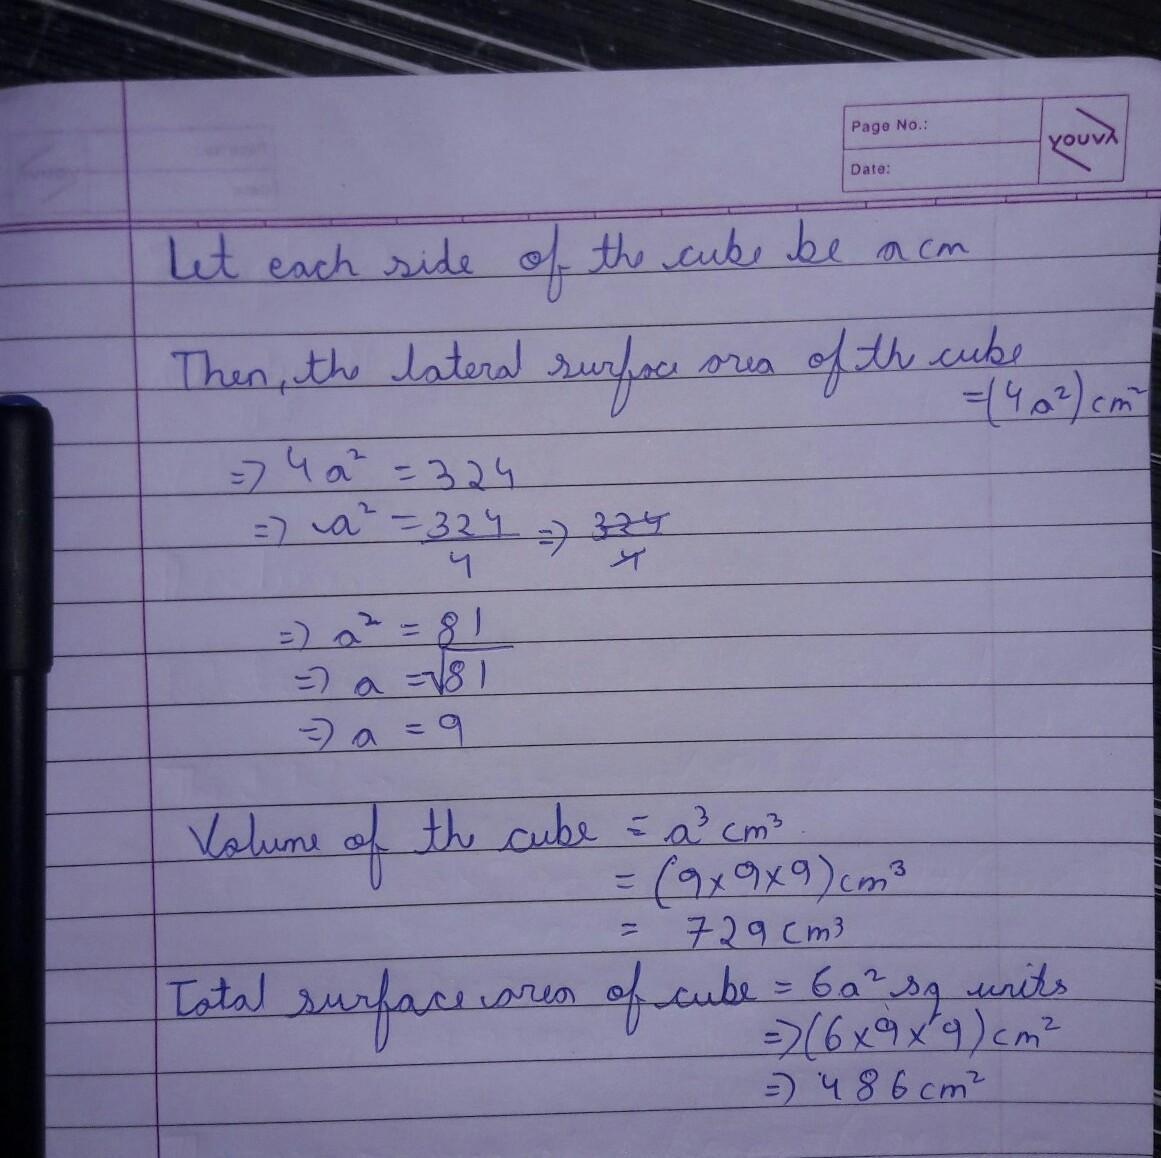 The Lateral Surface Area Of A Cube Is 324 Cm2 Find Its